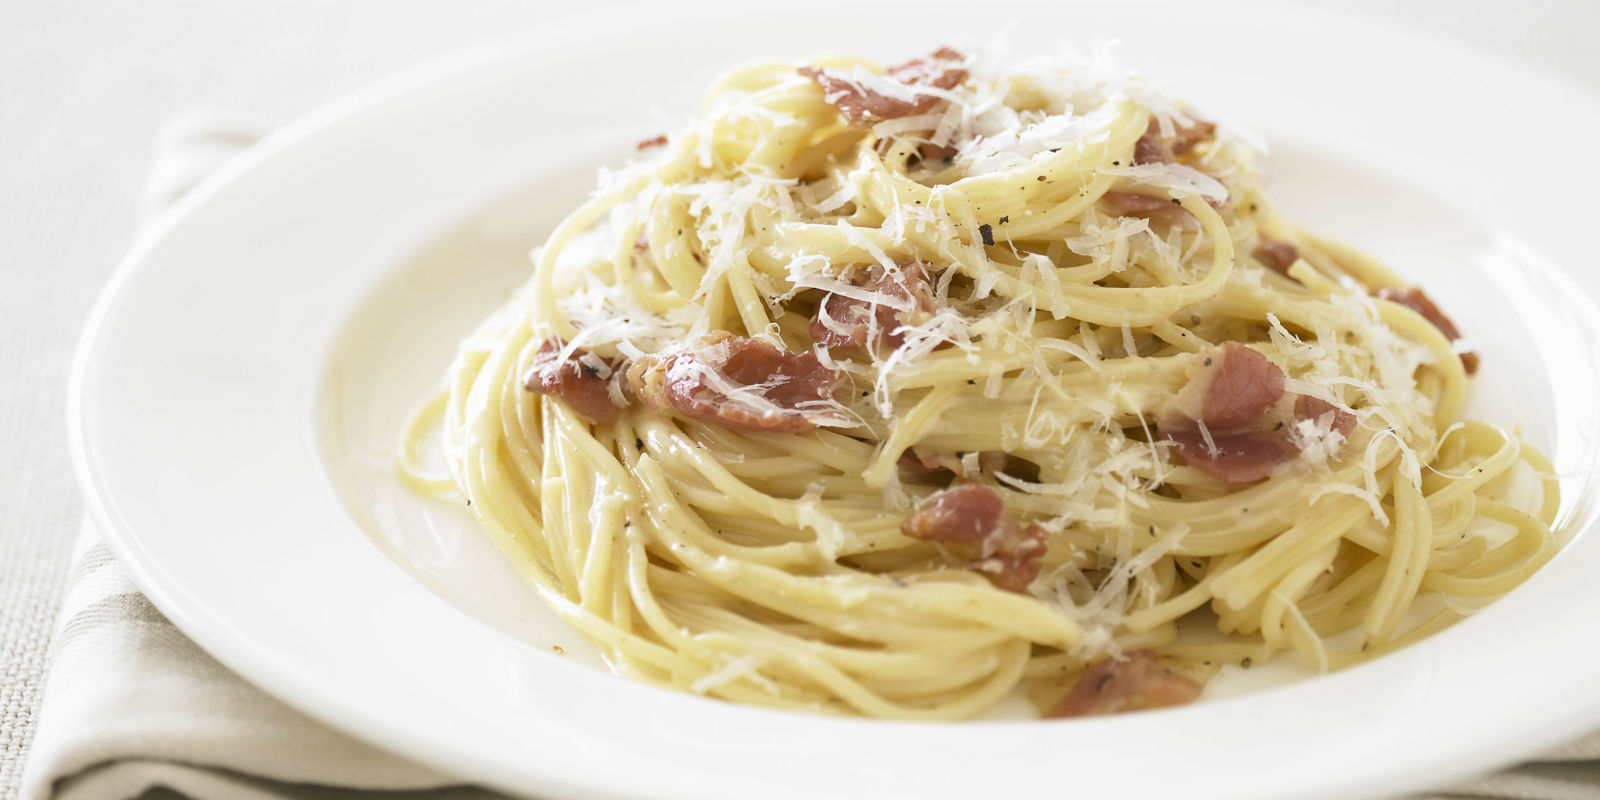 Best Spaghetti Carbonara Recipe - How to Make Spaghetti ...